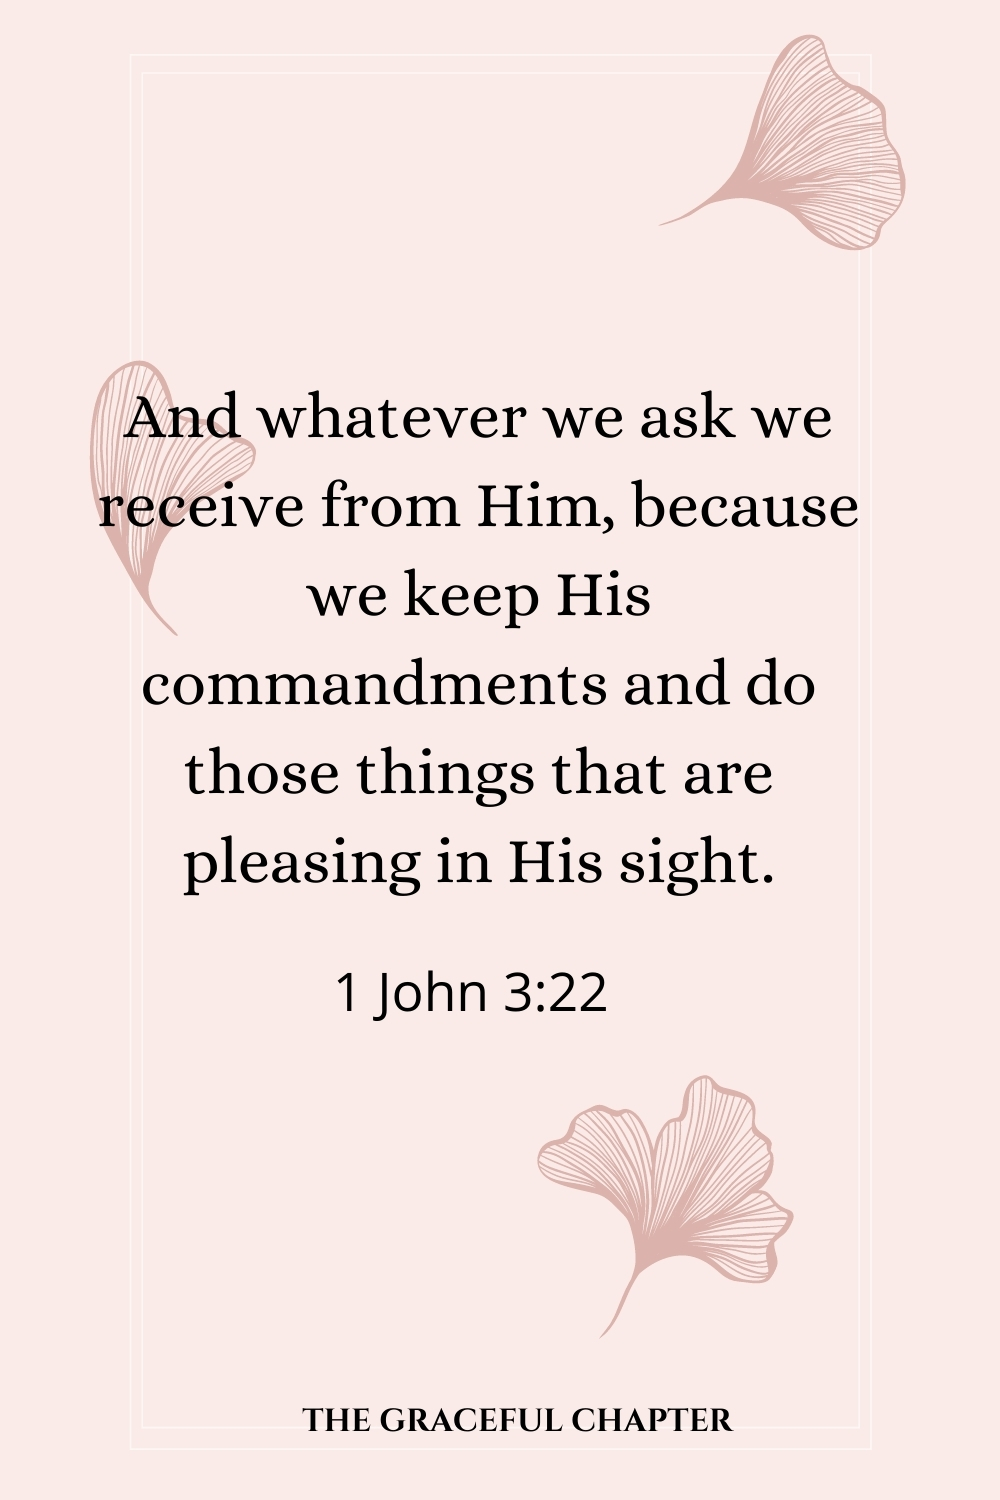 And whatever we ask we receive from Him, because we keep His commandments and do those things that are pleasing in His sight. 1 John 3:22